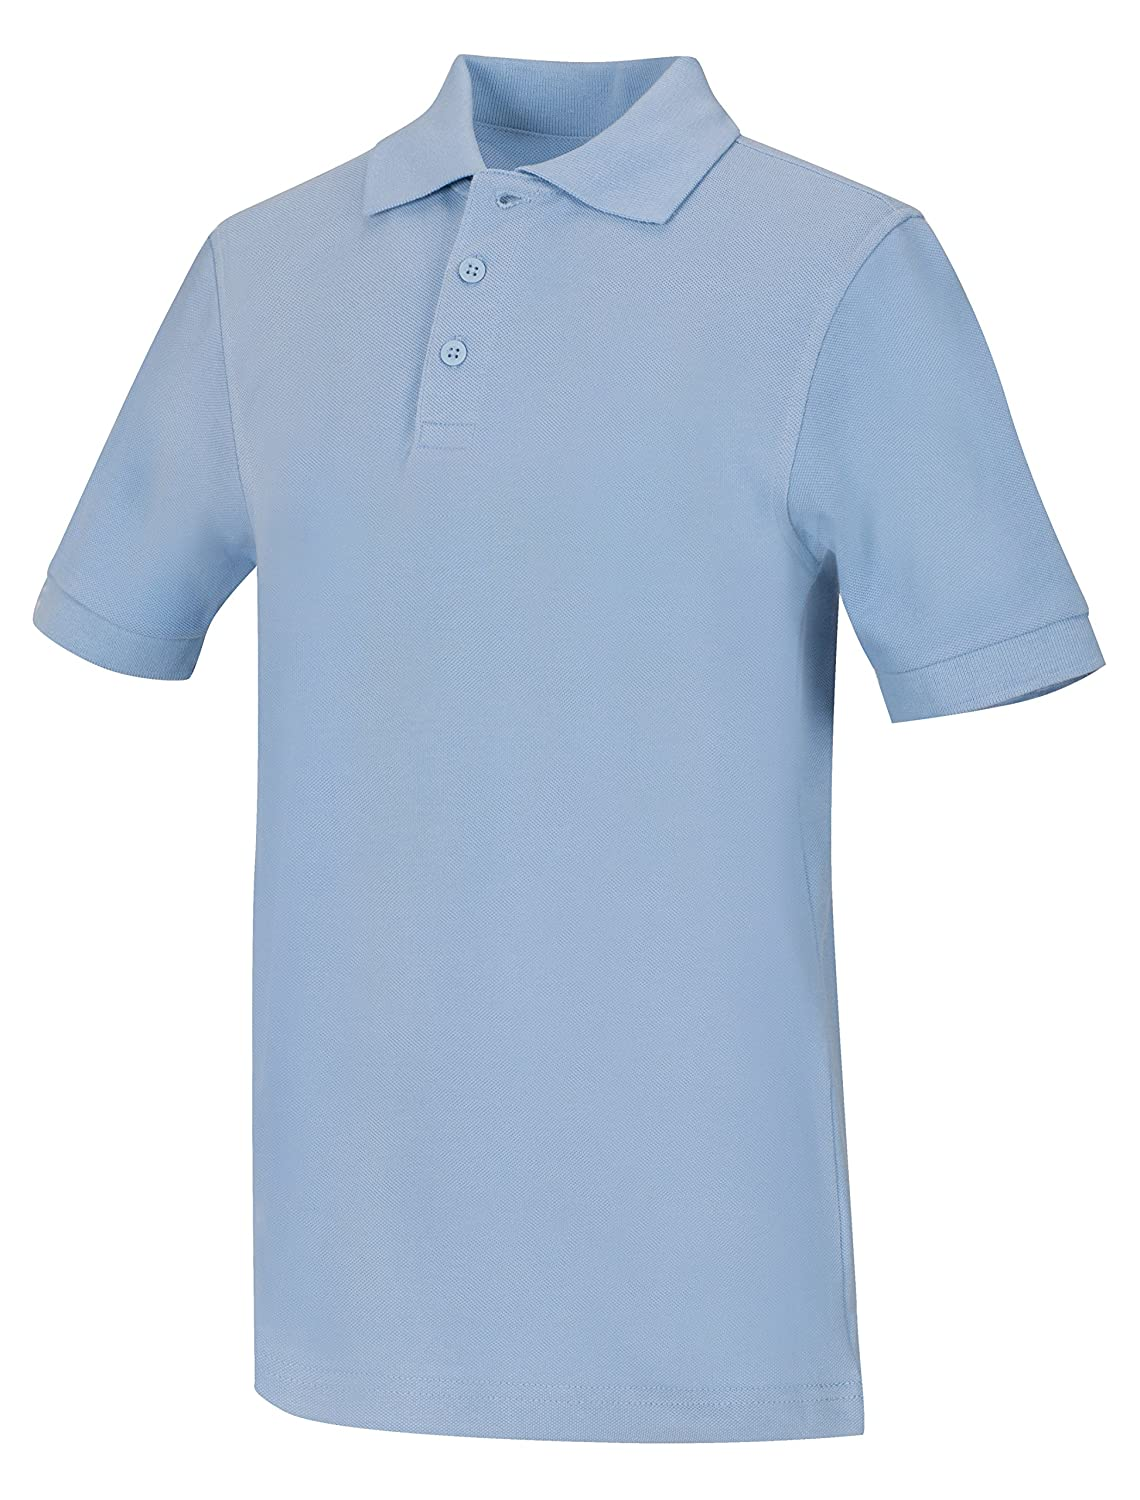 Classroom Big Boys Uniform Pique Short Sleeve Polo,Light Blue,X-Small